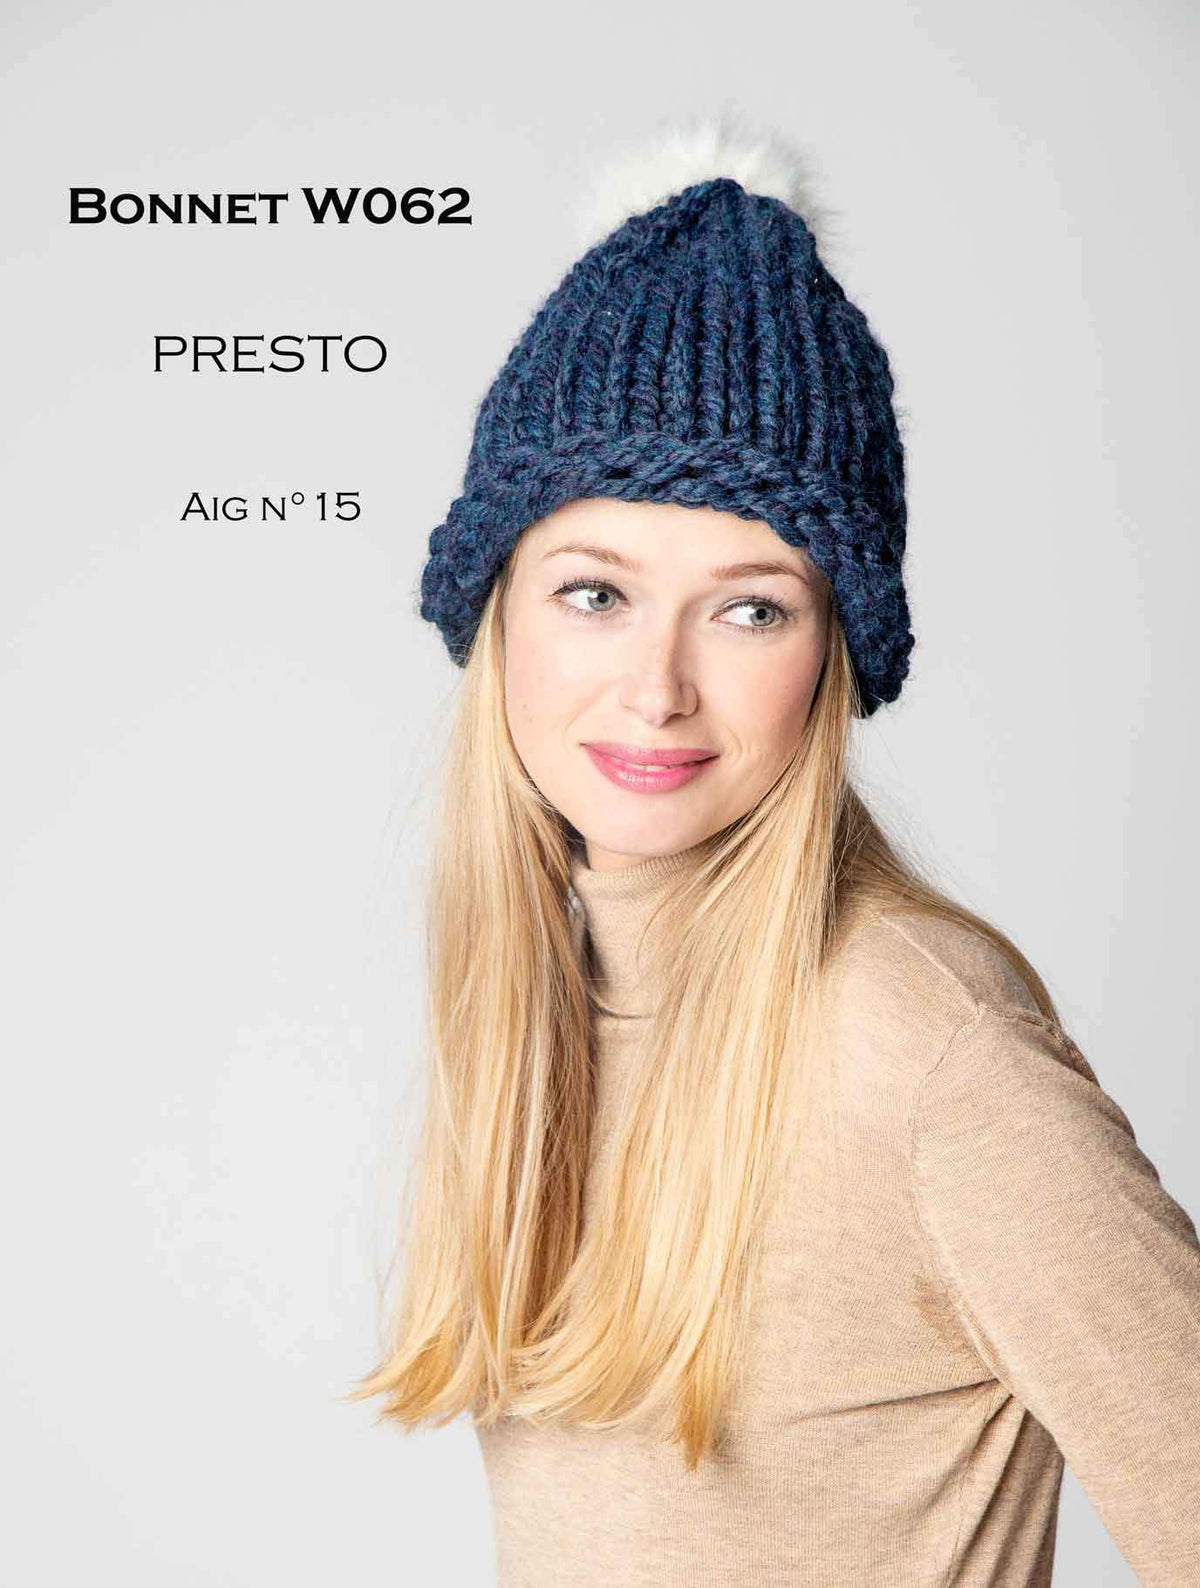 Free Cheval Blanc pattern - Bonnet W062 Web Exclusive